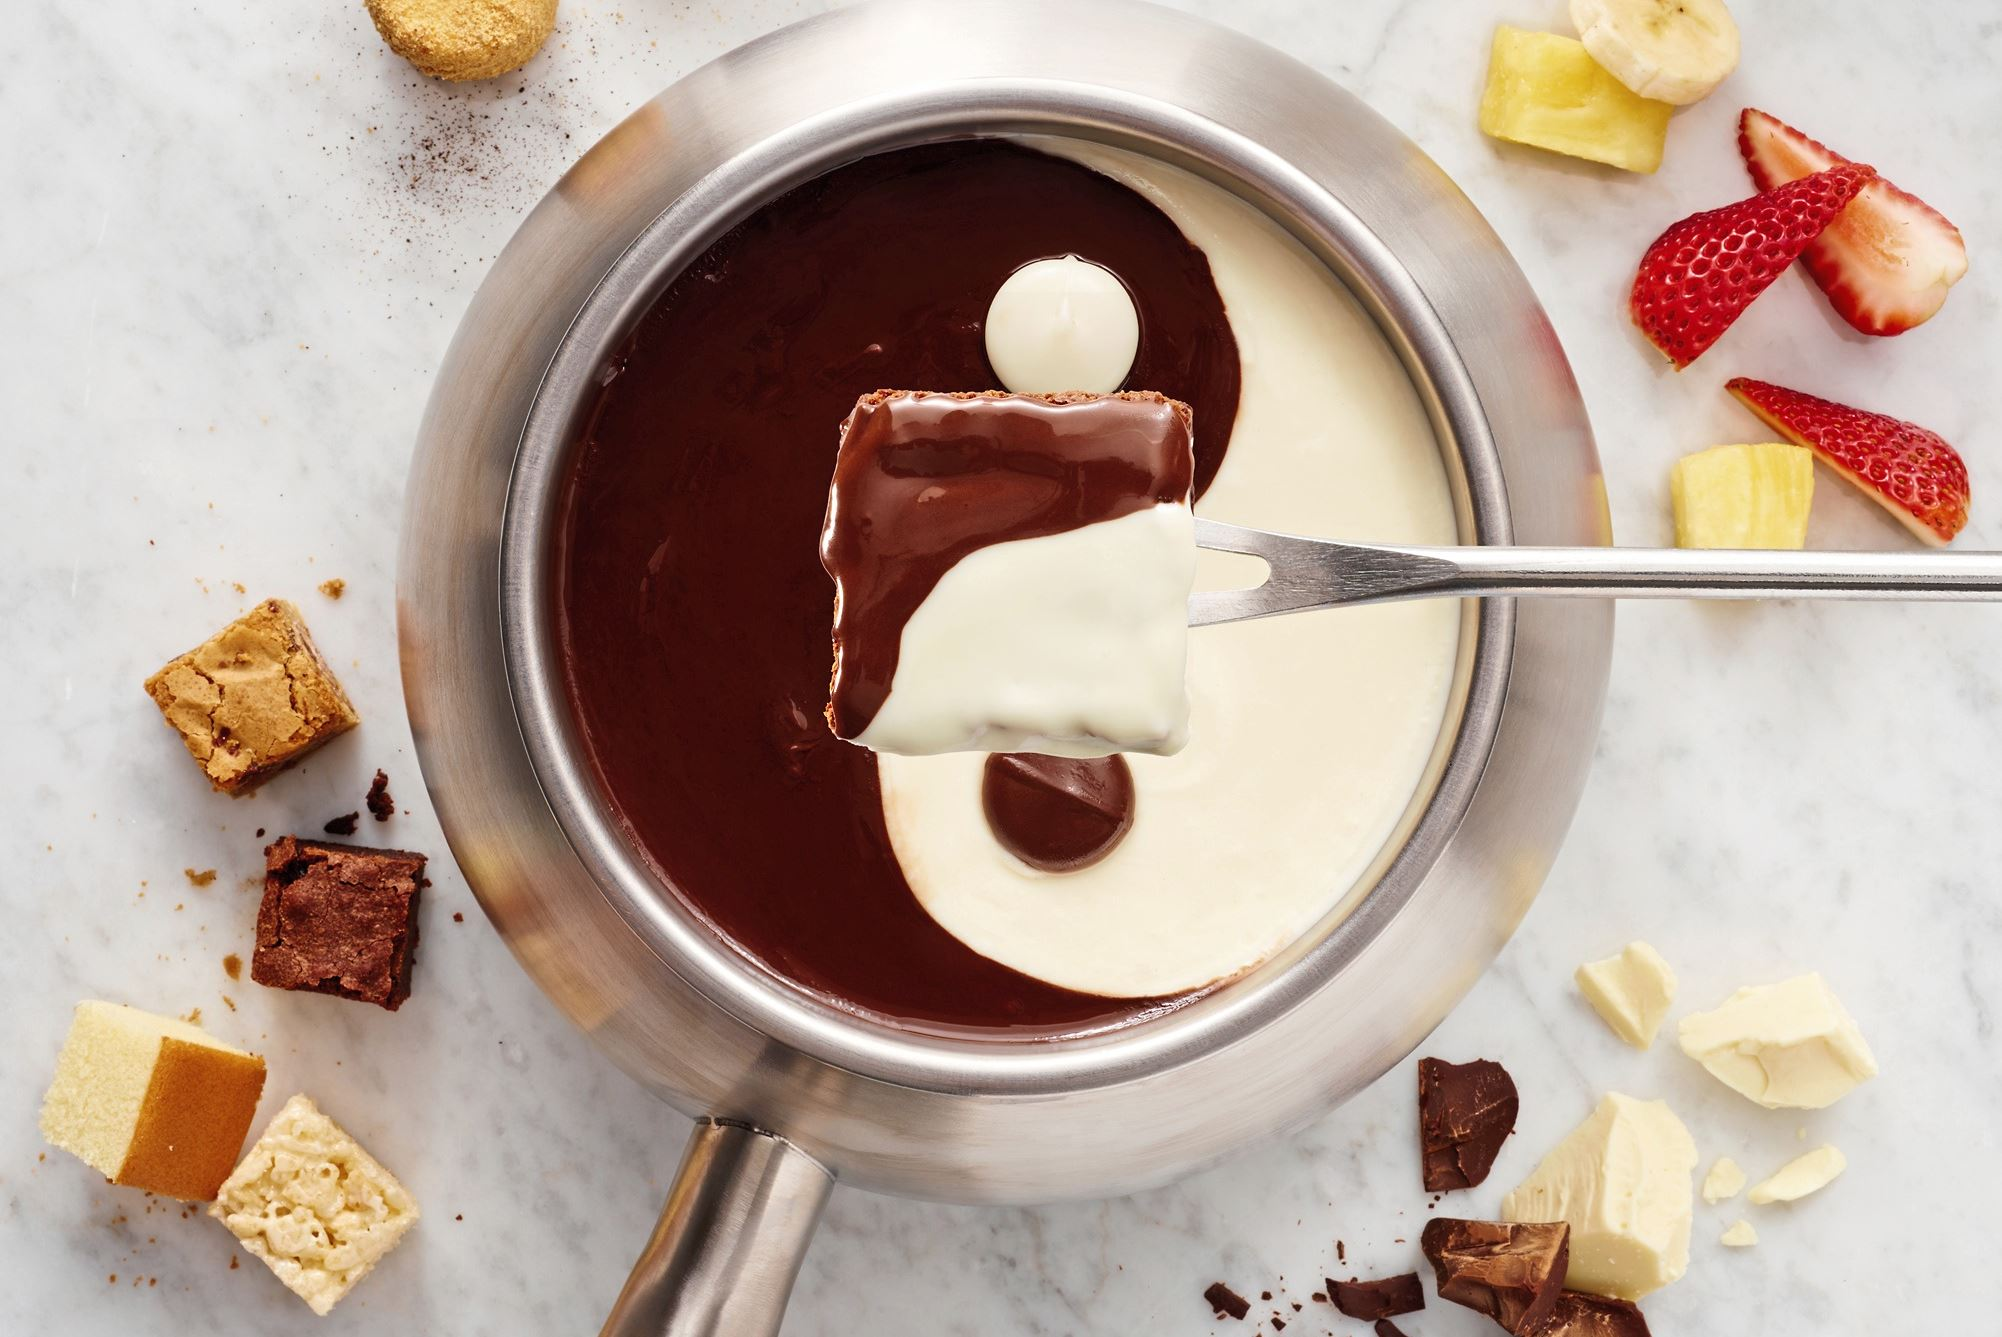 FTB 28903_03 2017 Brand Yin Yang BH_v1_Revised Yin & Yang is one of the chocolate fondues available for New Year's Eve at The Melting Pot in Station Square.